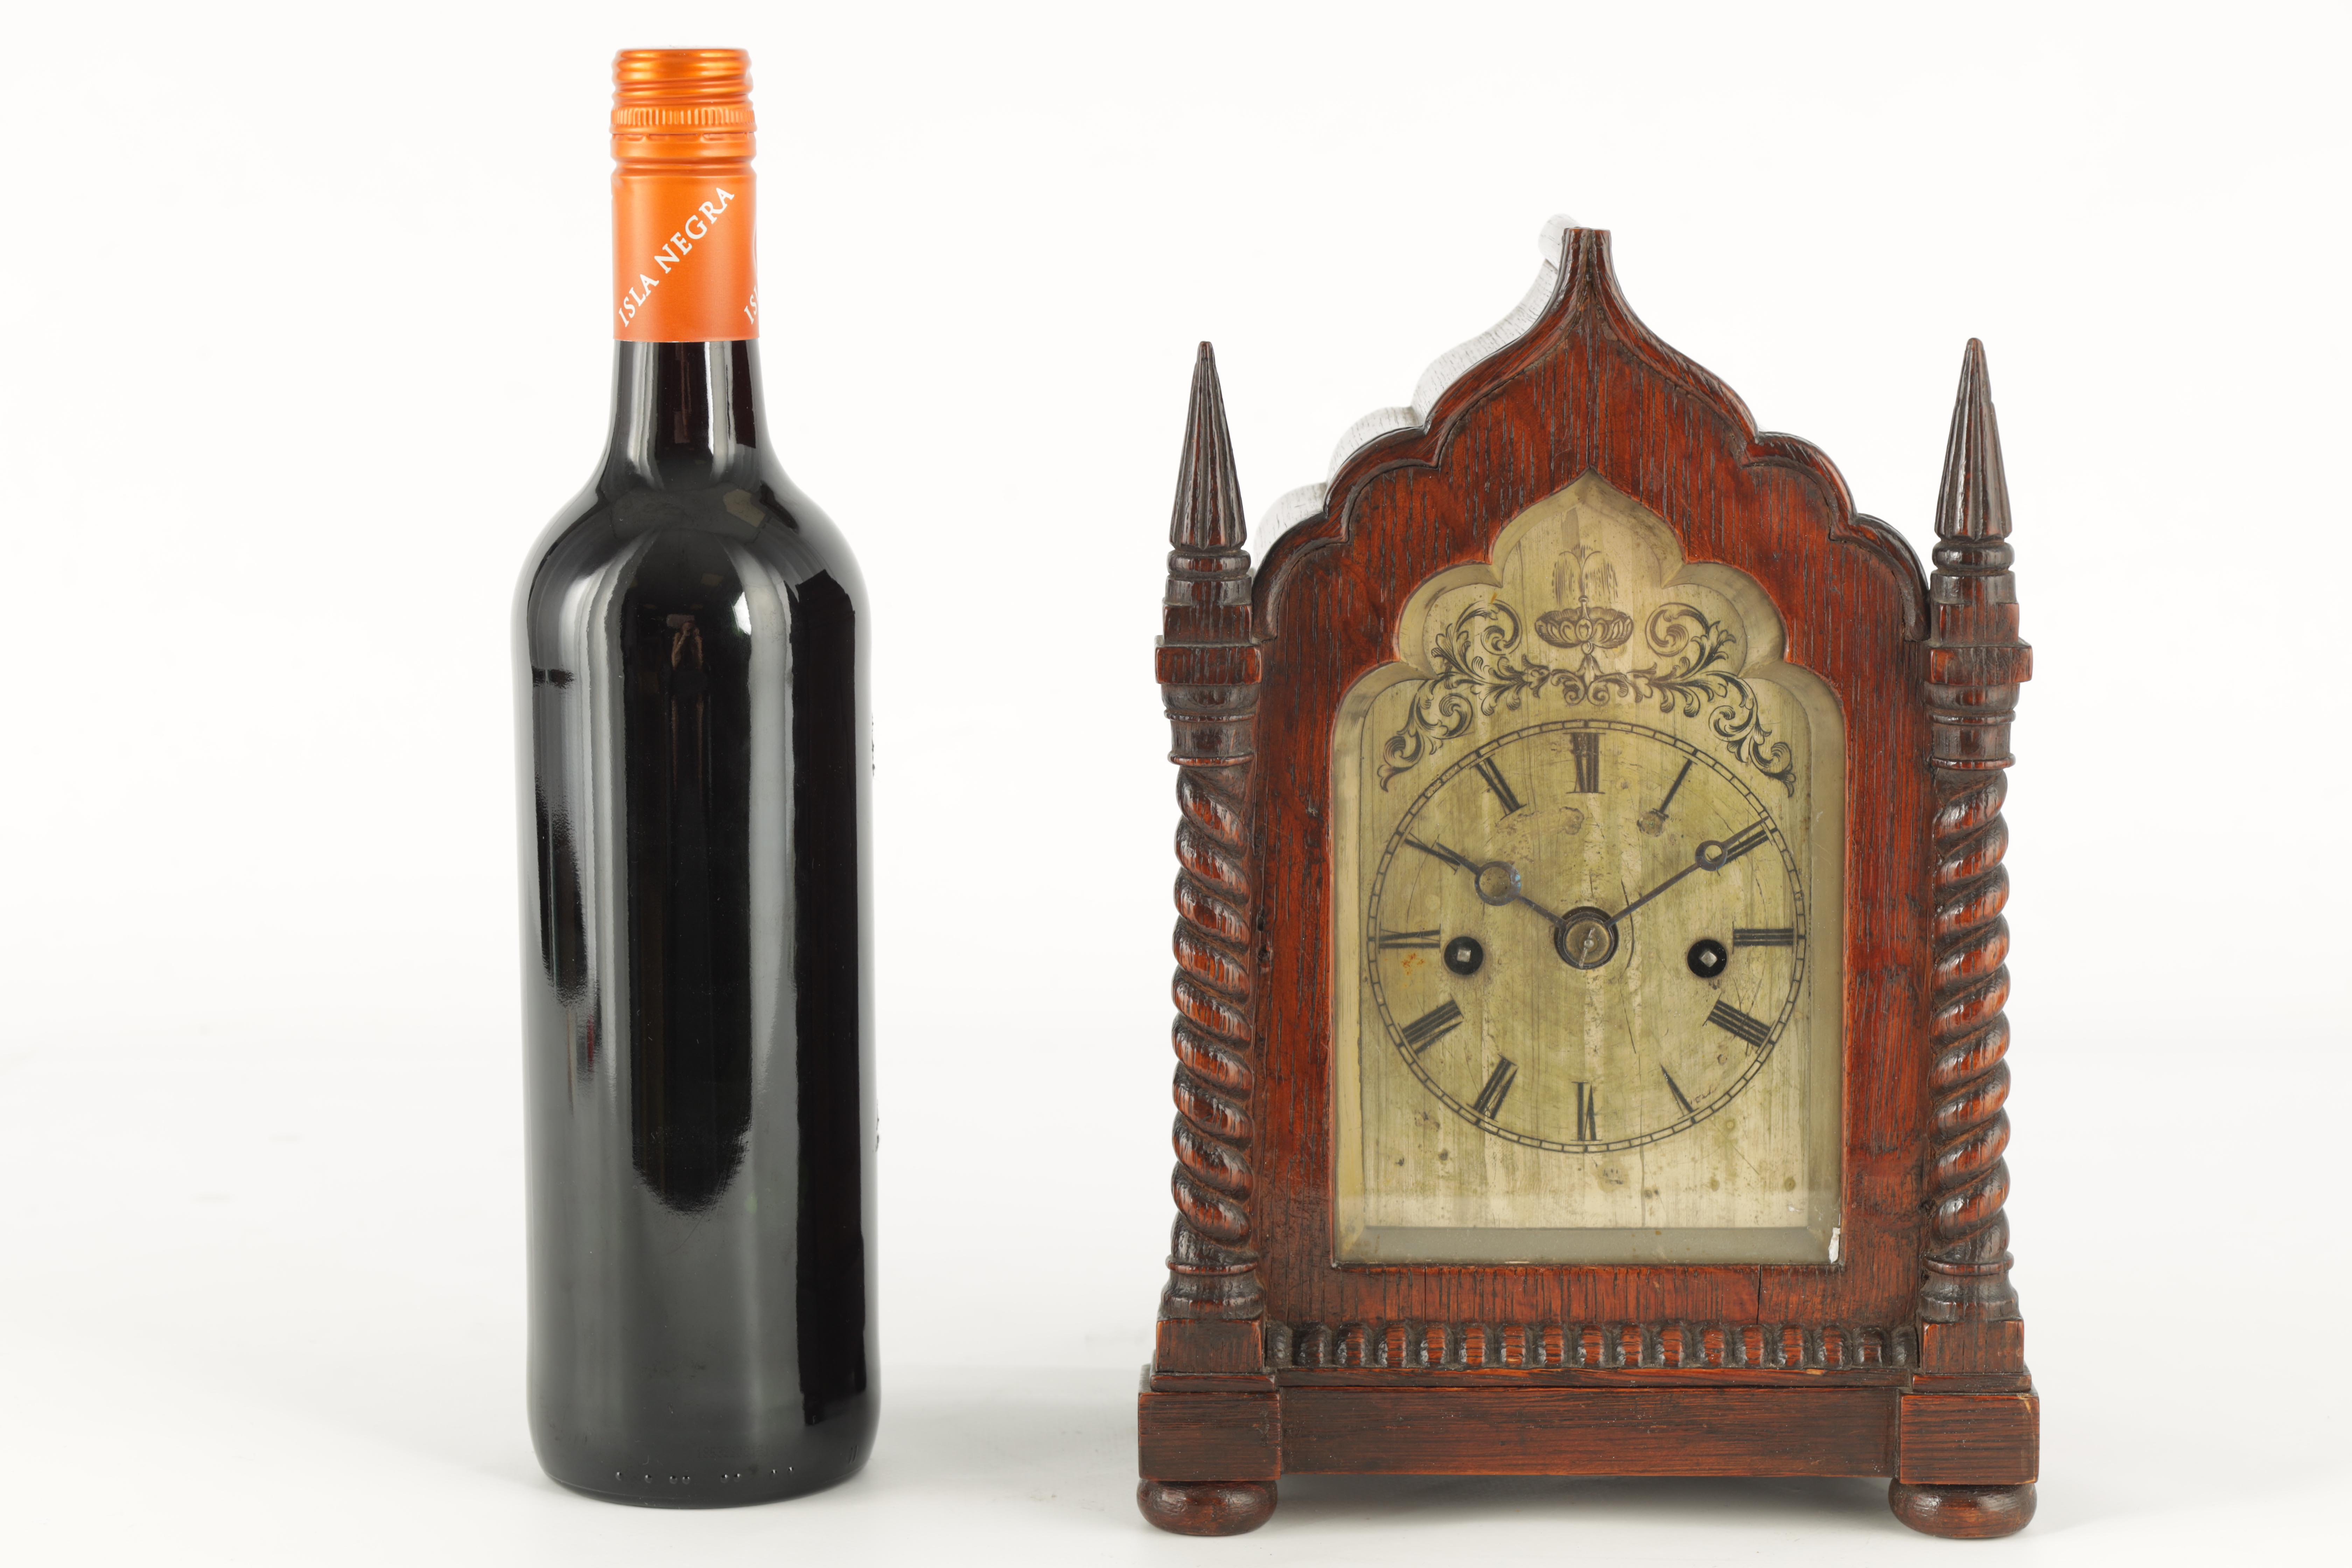 A SMALL MID 19TH CENTURY OAK CASED DOUBLE FUSEE MANTEL CLOCK the gothic style case with twisted - Image 7 of 7